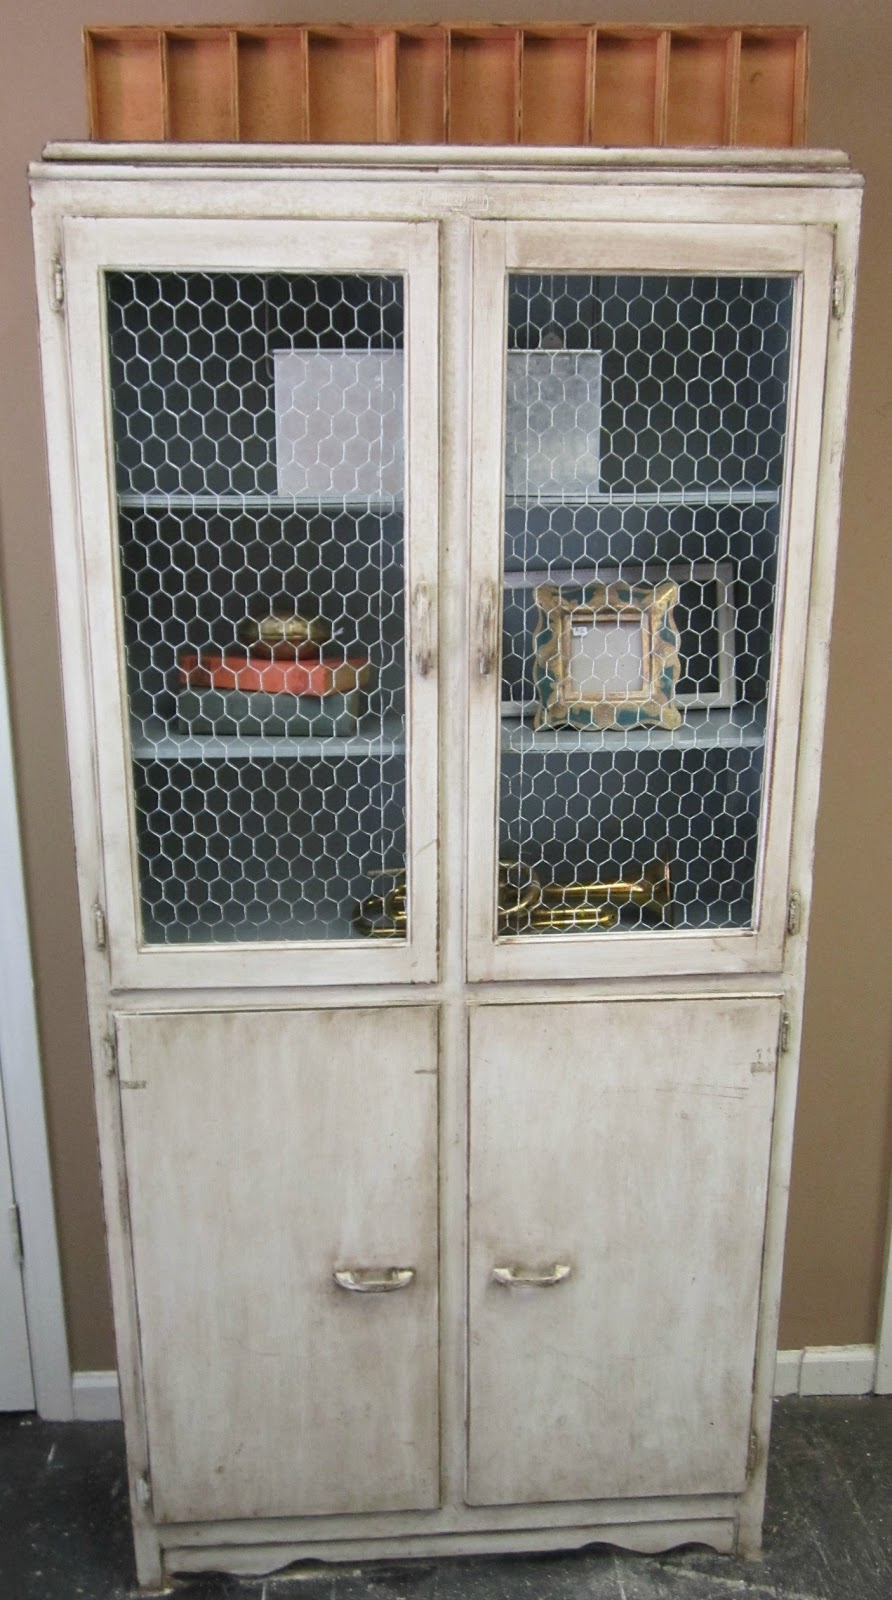 Vintage Finds: Chicken Wire Cabinet